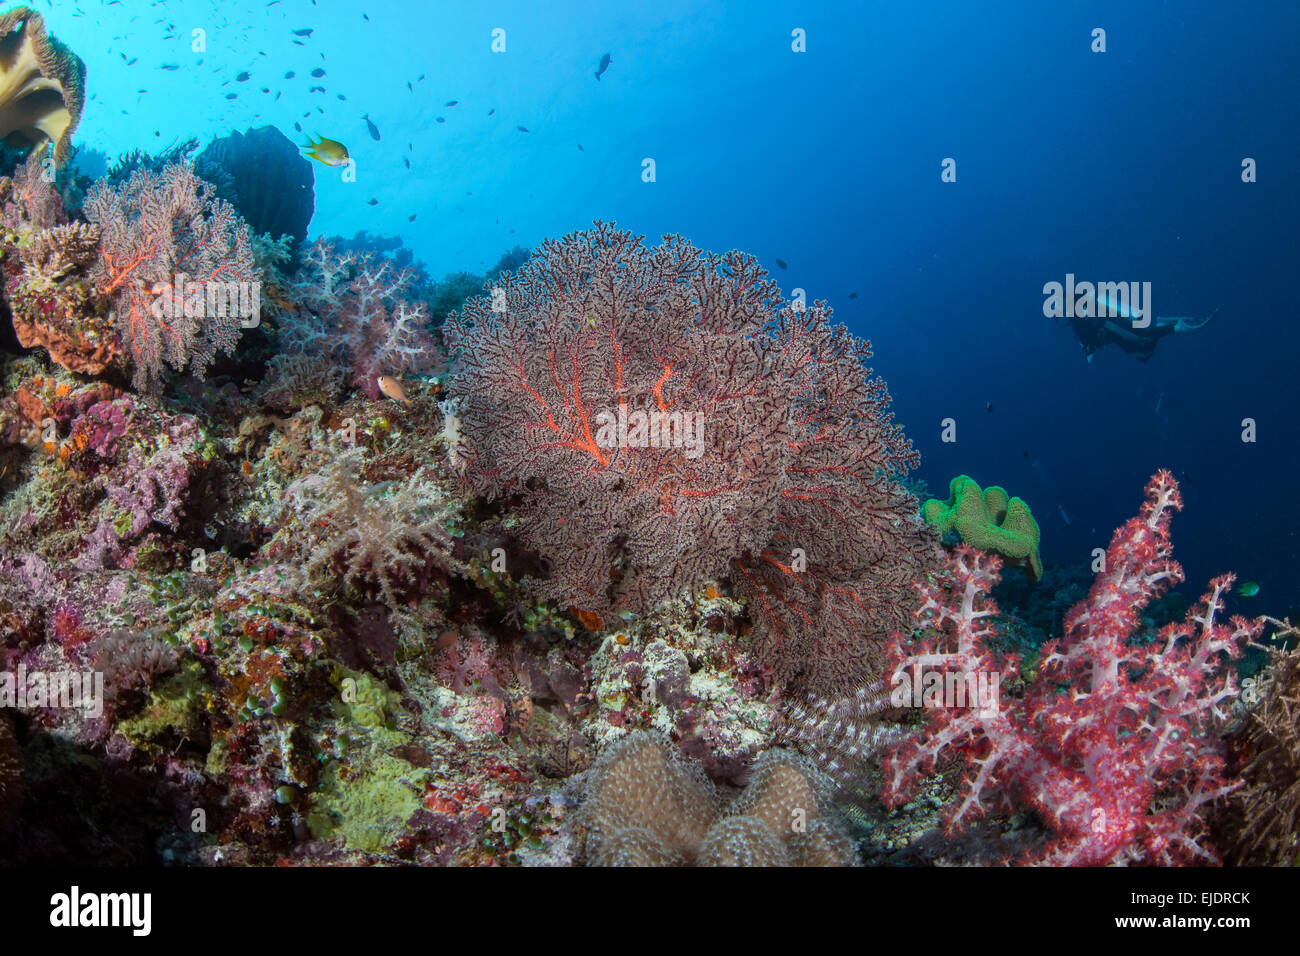 Scuba divers explore a coral reef with soft corals in a variety of pastel colors. Spratly Islands, South China Sea. - Stock Image